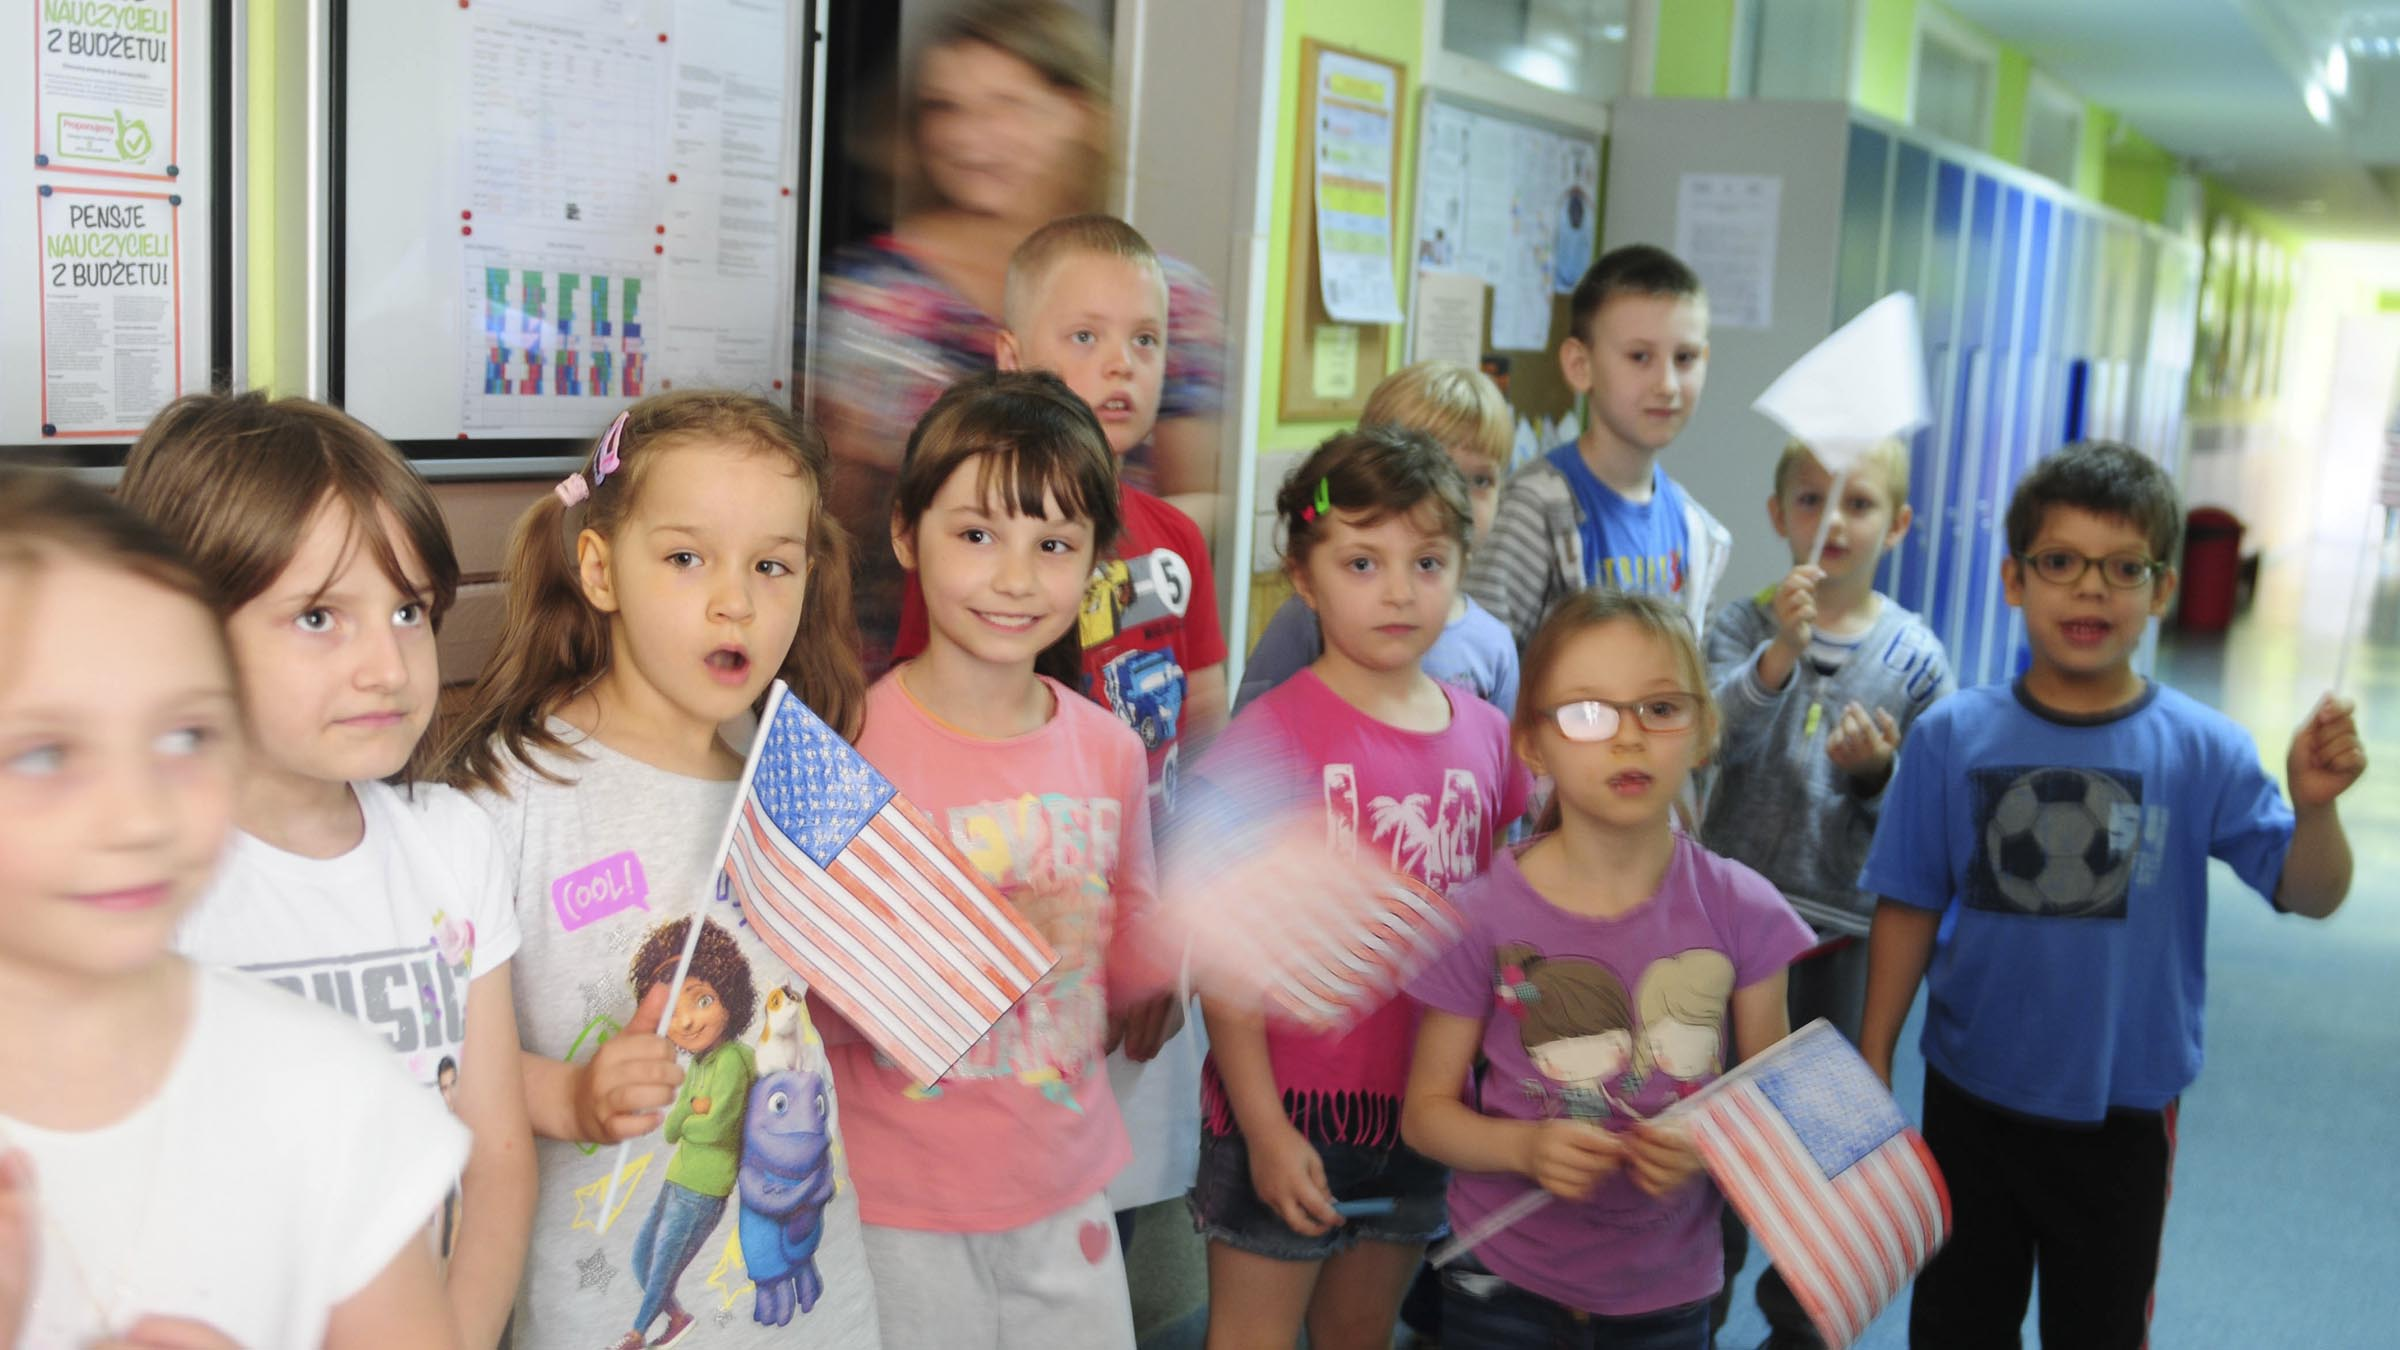 Young kids waving flags